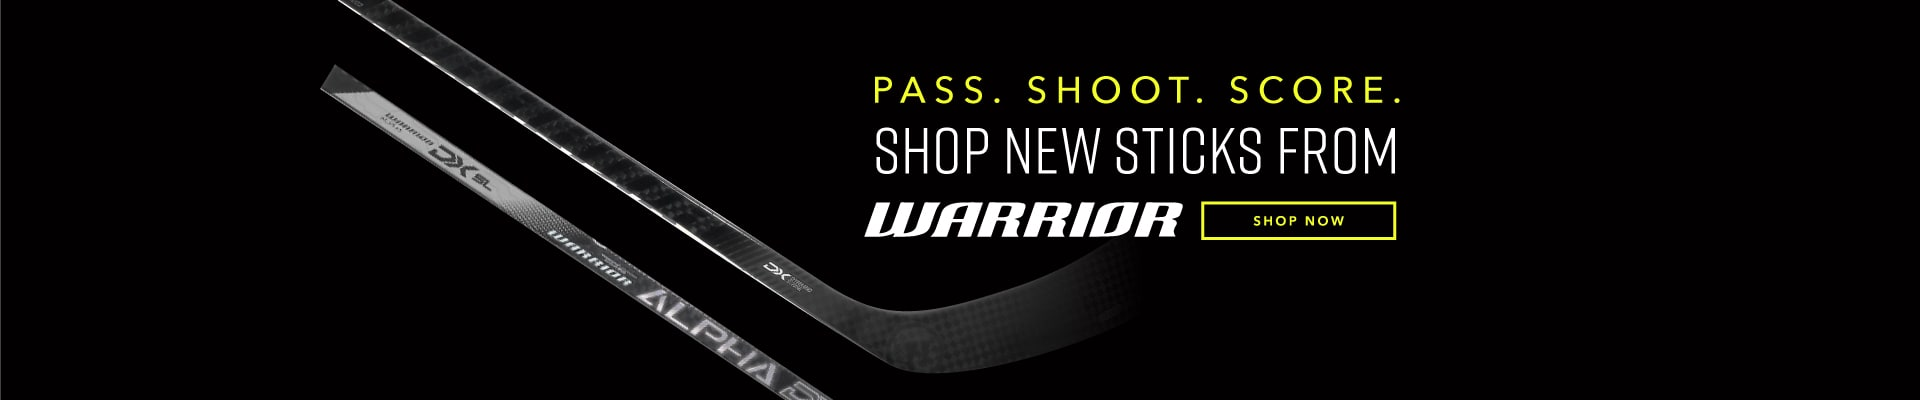 Shop New Sticks From Warrior